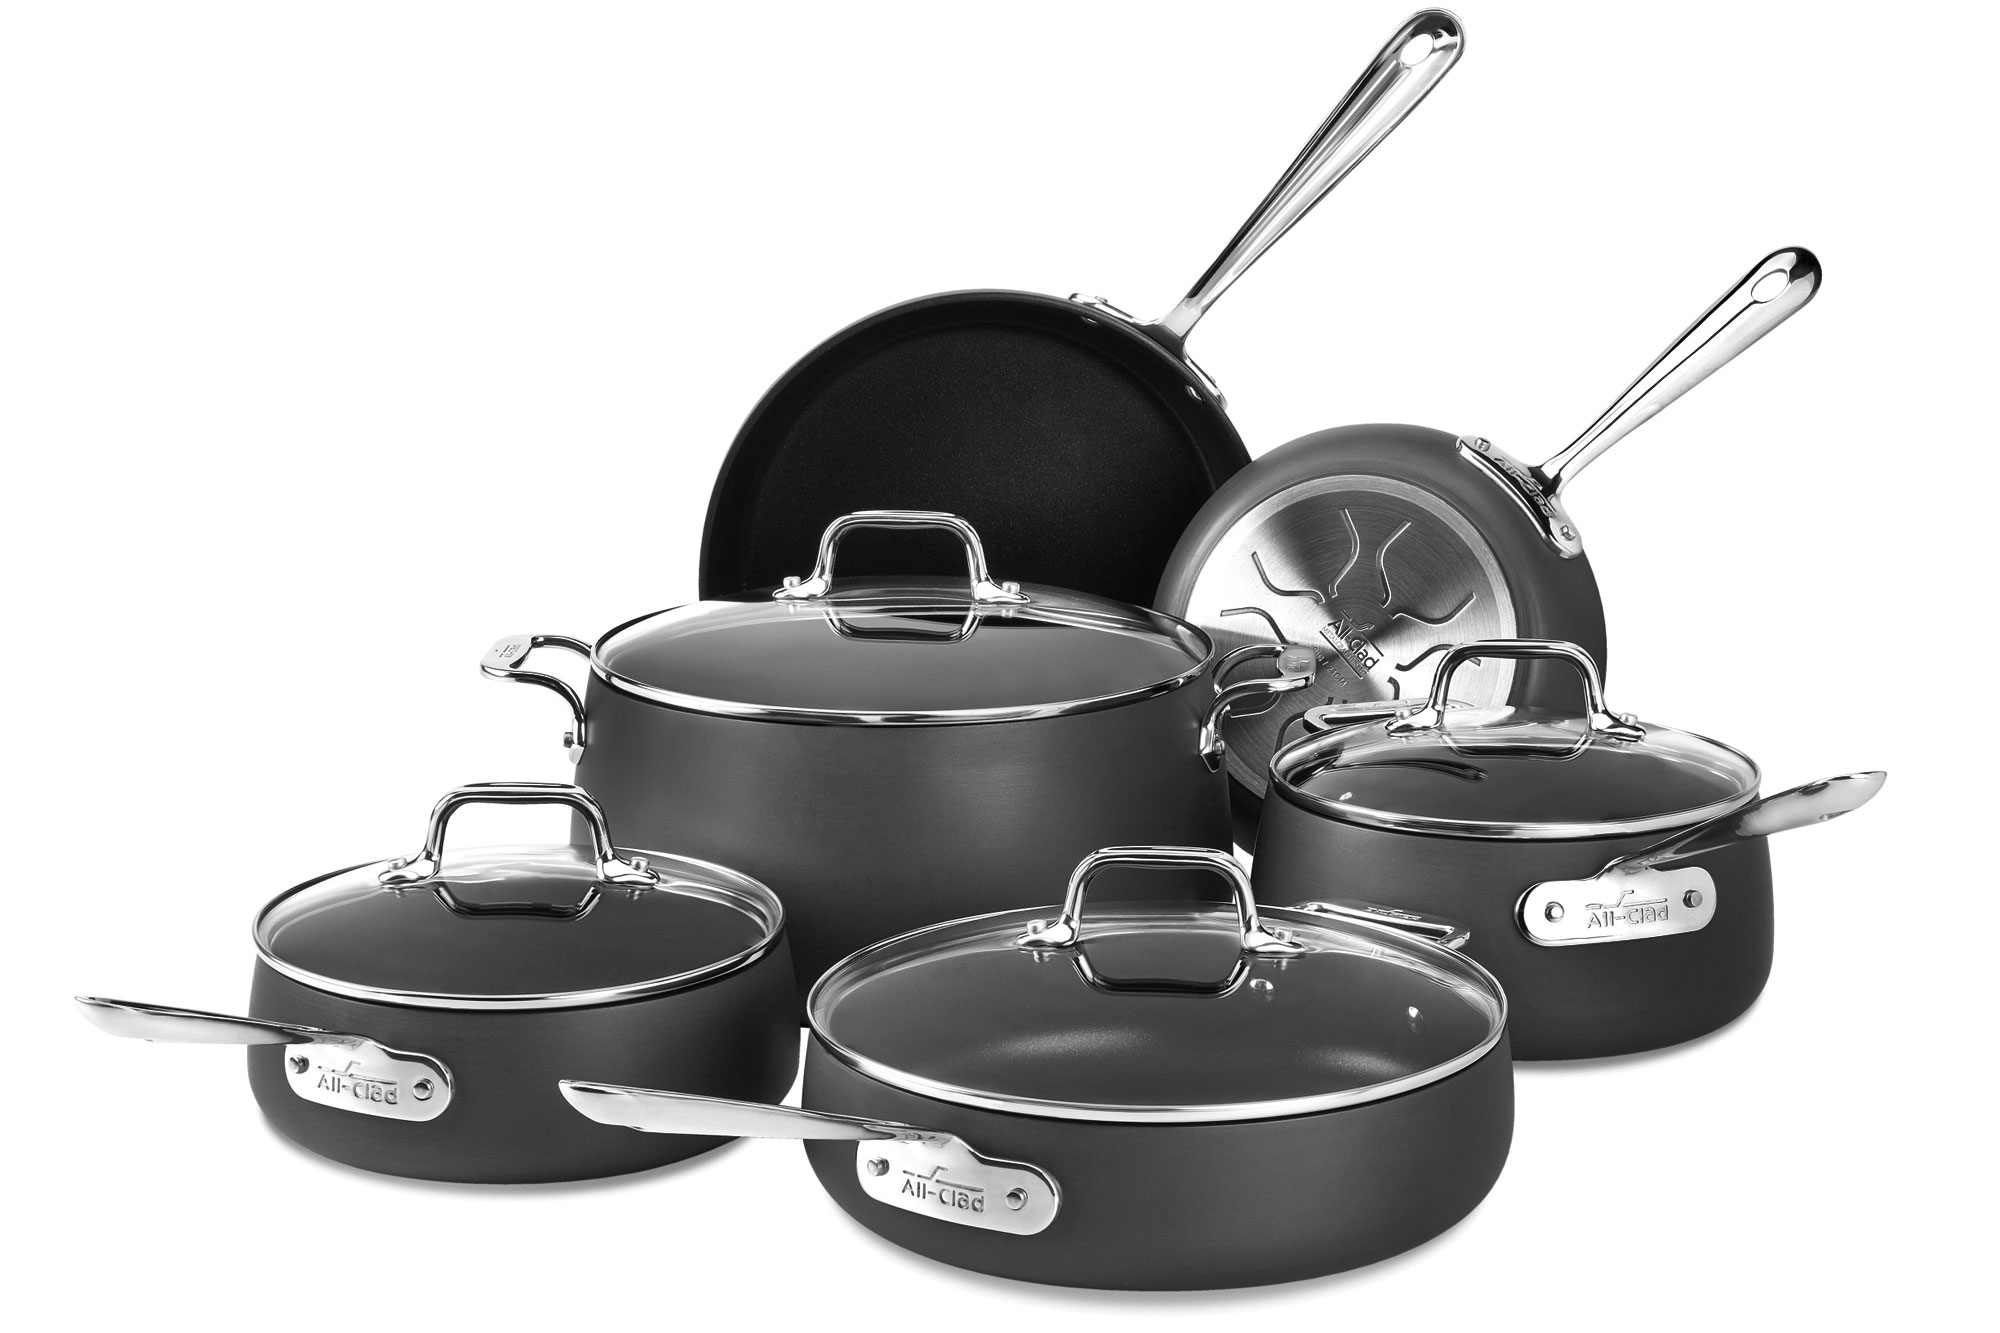 All Clad Ha1 Nonstick Cookware Set 10 Piece Cutlery And